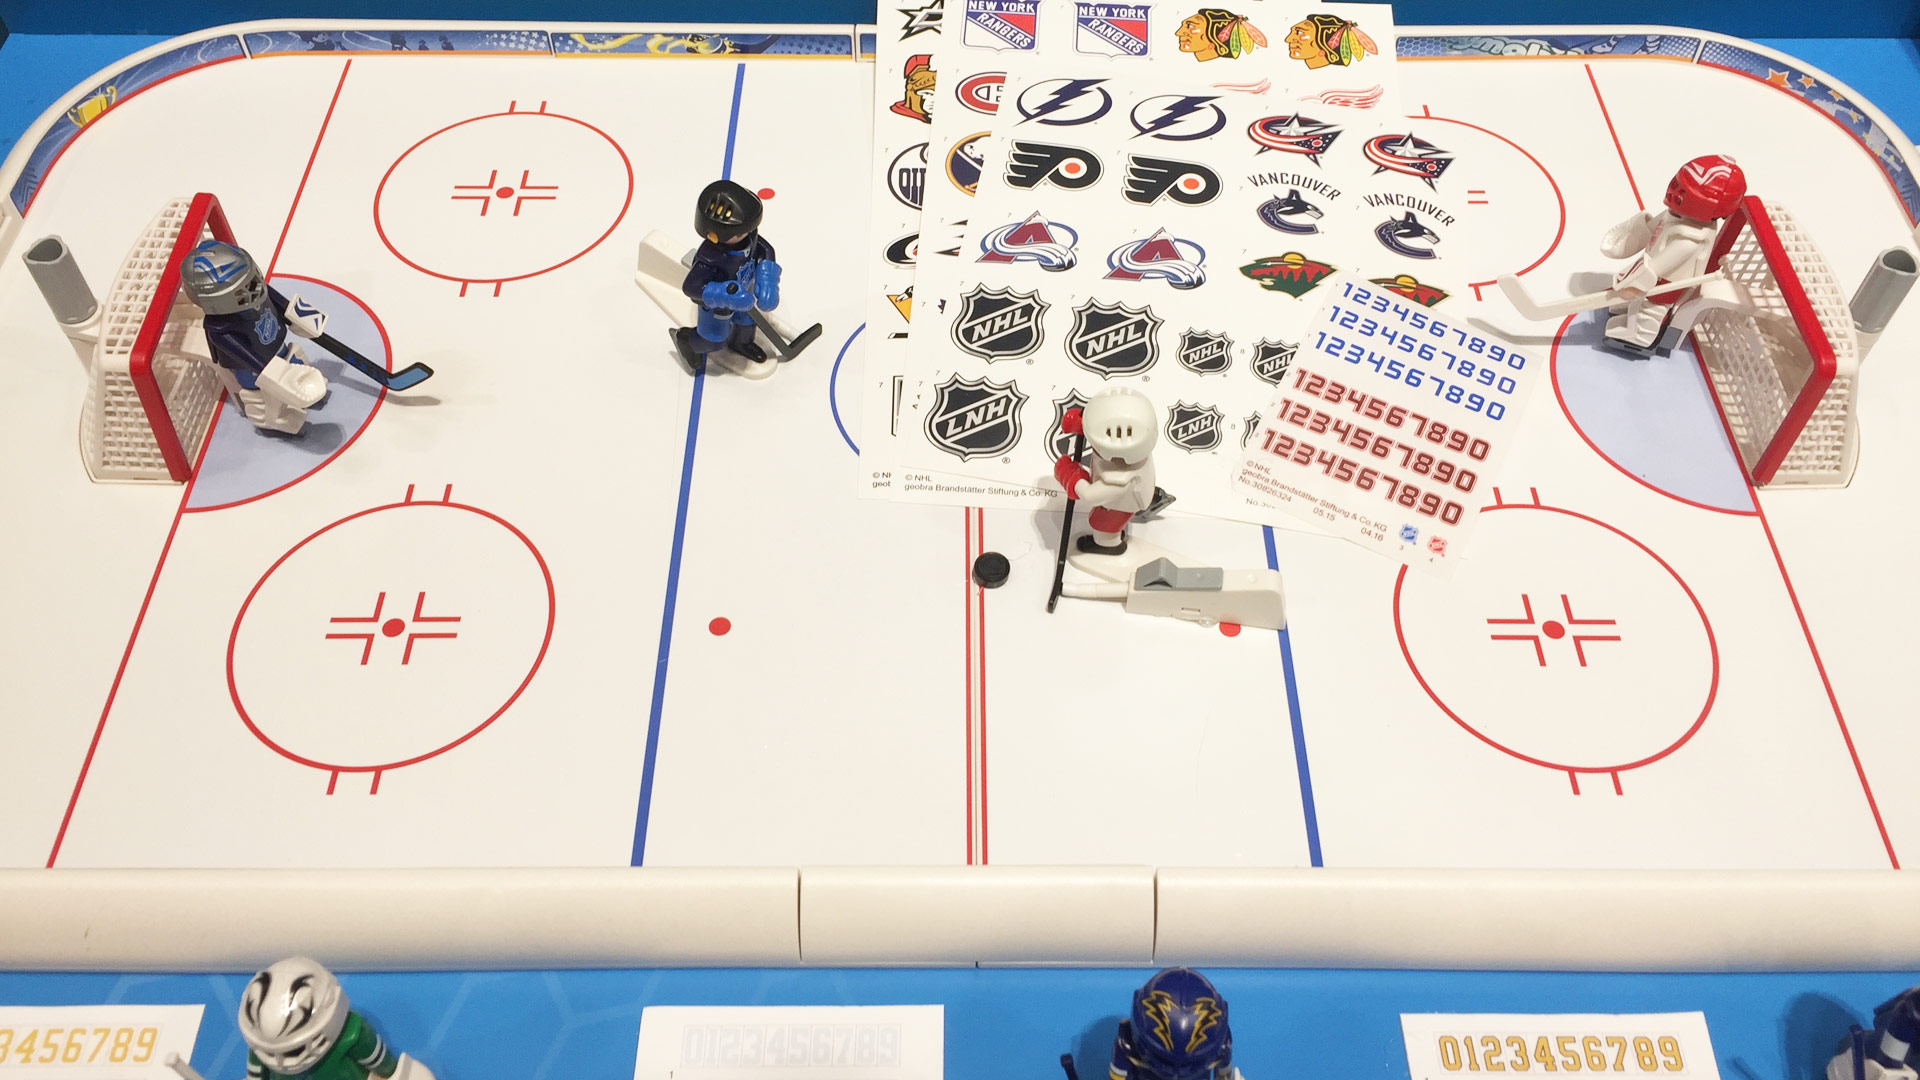 Playmobil Hockey NHL Set Rink and Goalies at Toy Fair 2017